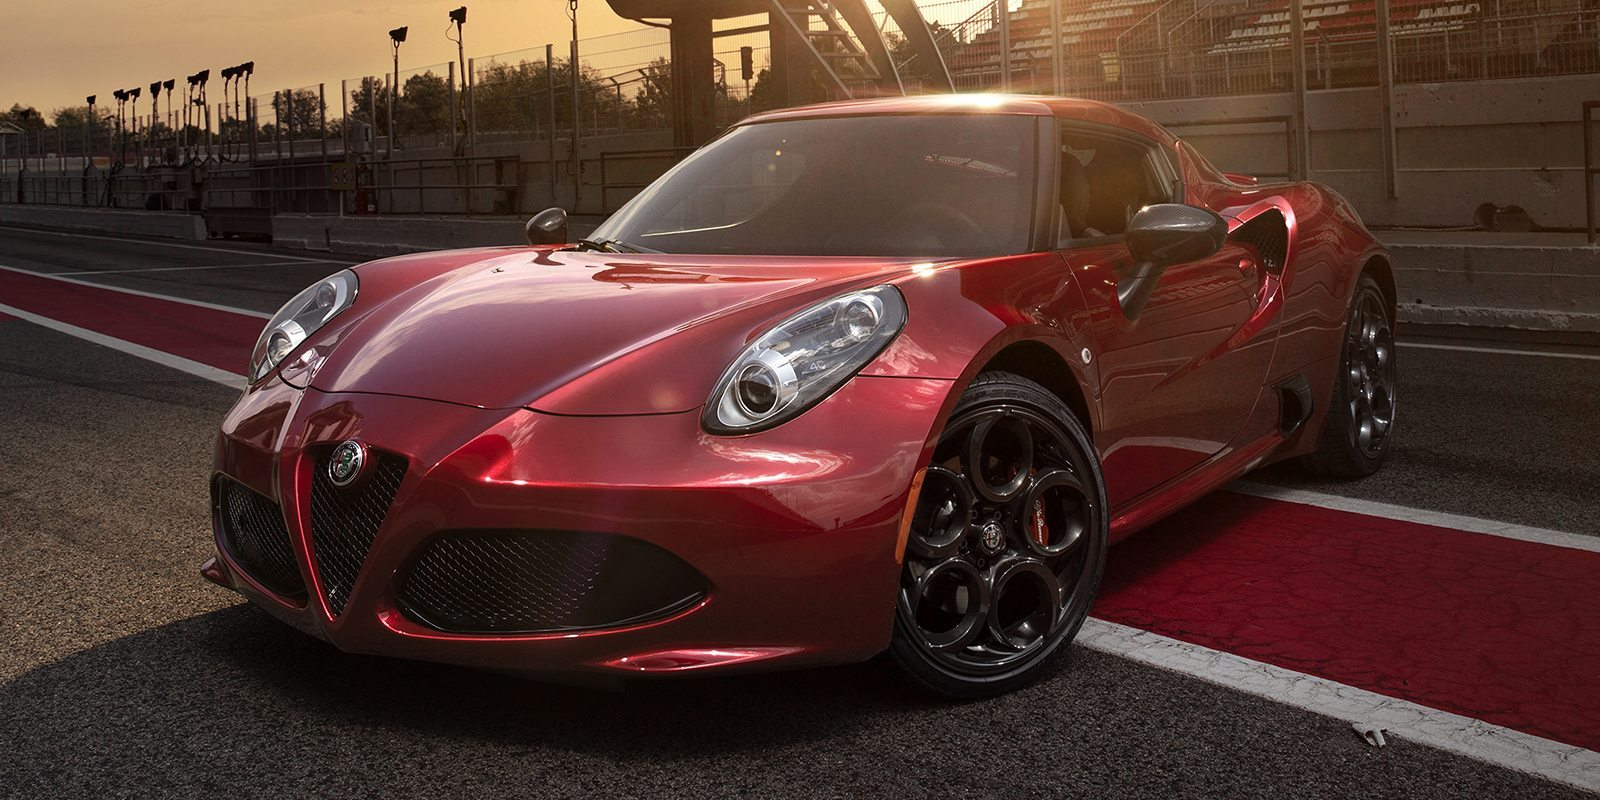 2018 alfa romeo 4c coupe car 2018 alfa romeo 4c car price engine full technical. Black Bedroom Furniture Sets. Home Design Ideas